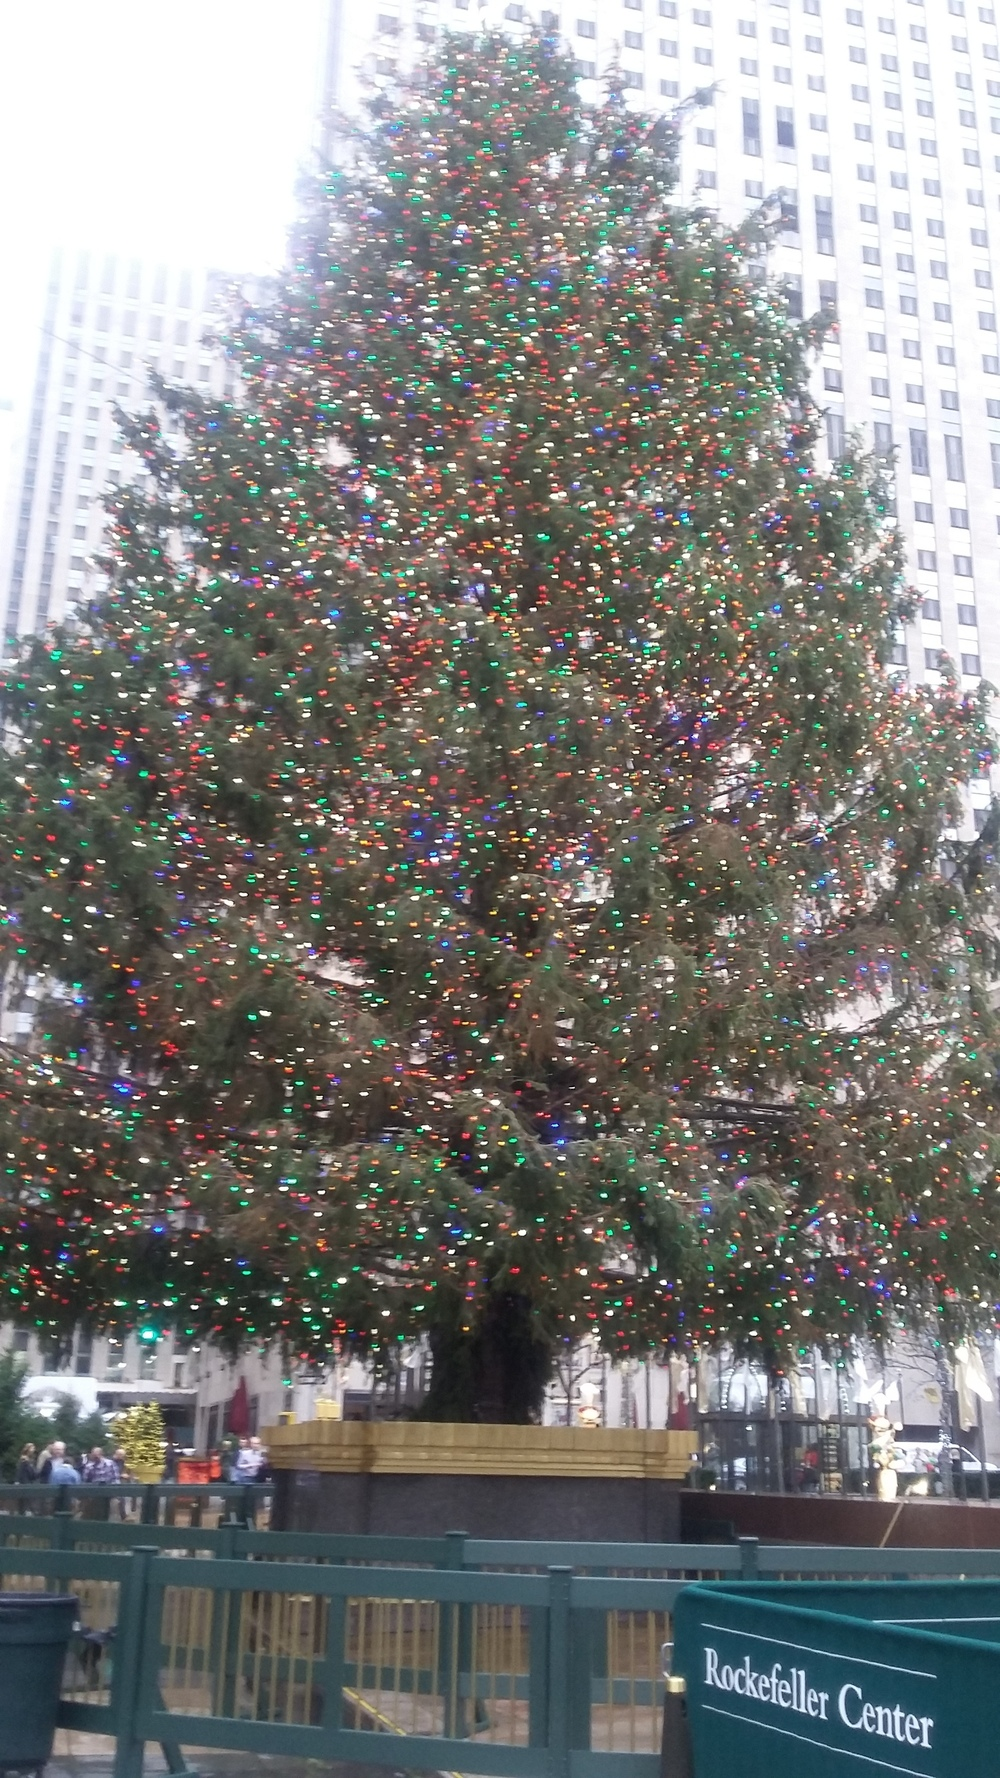 The beautiful Christmas tree at Rockefeller Center